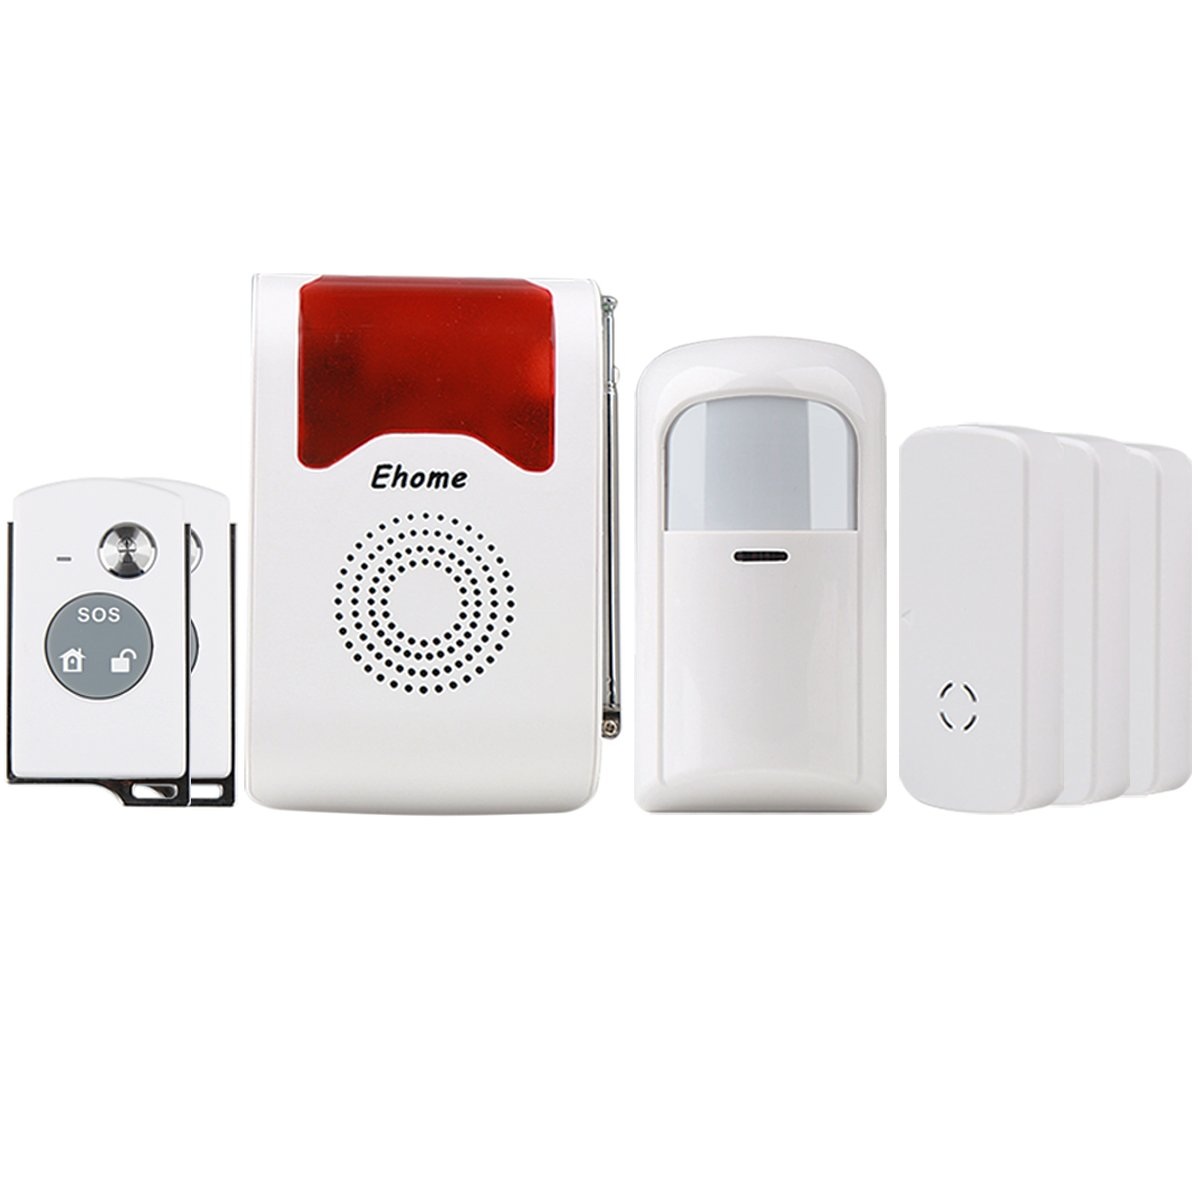 Ehome Wireless Acousto-Optic Home Security Alarm System Wireless PIR Motion Infrared Detector 3 Pairs Door Alarm Sensor Anti-Theft SOS System with 2pcs Remote Controller AF01512